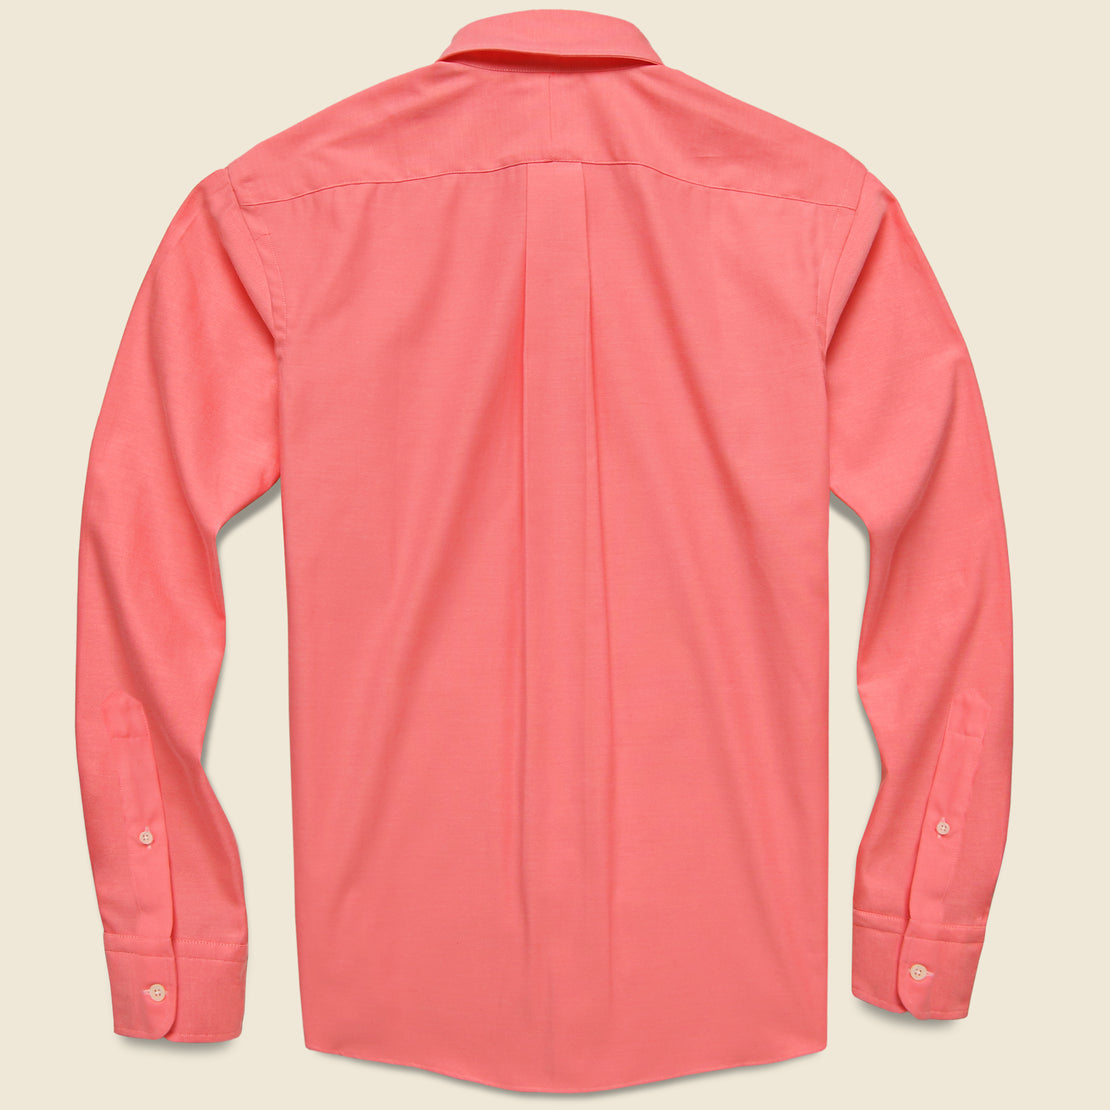 Neon Oxford Shirt - Pink